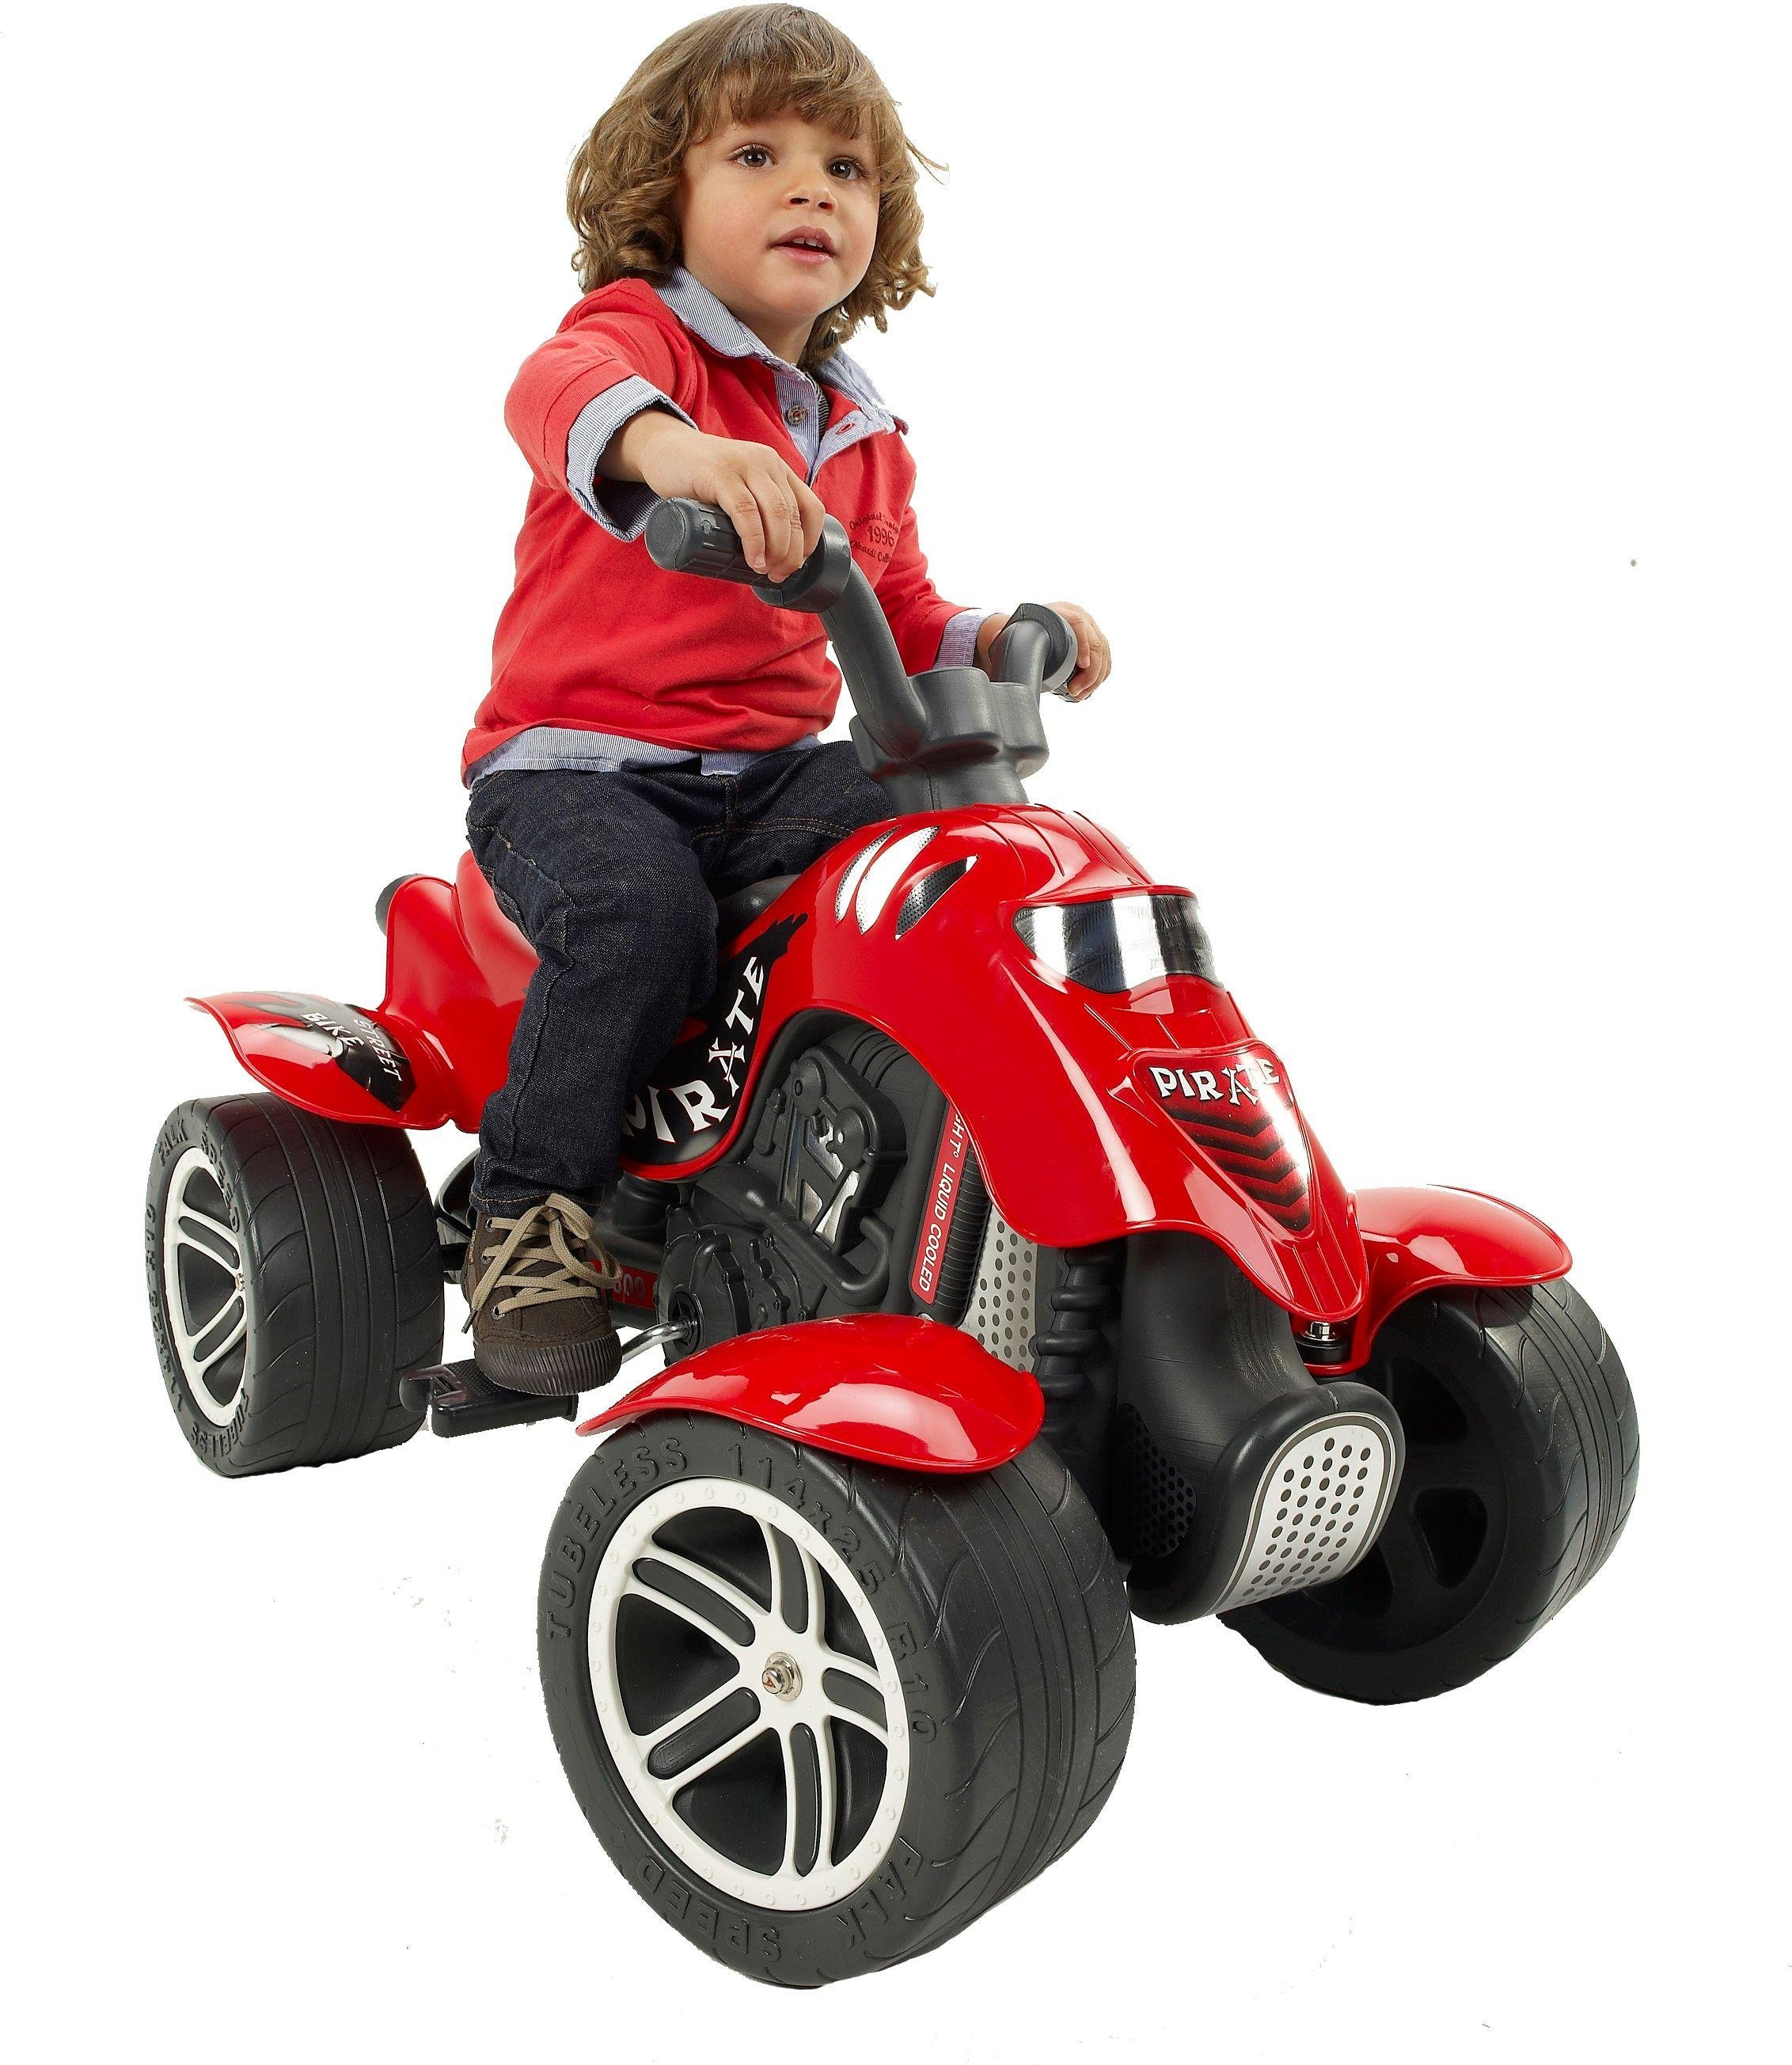 Image of Falk Kids Pirate Quad - Bike